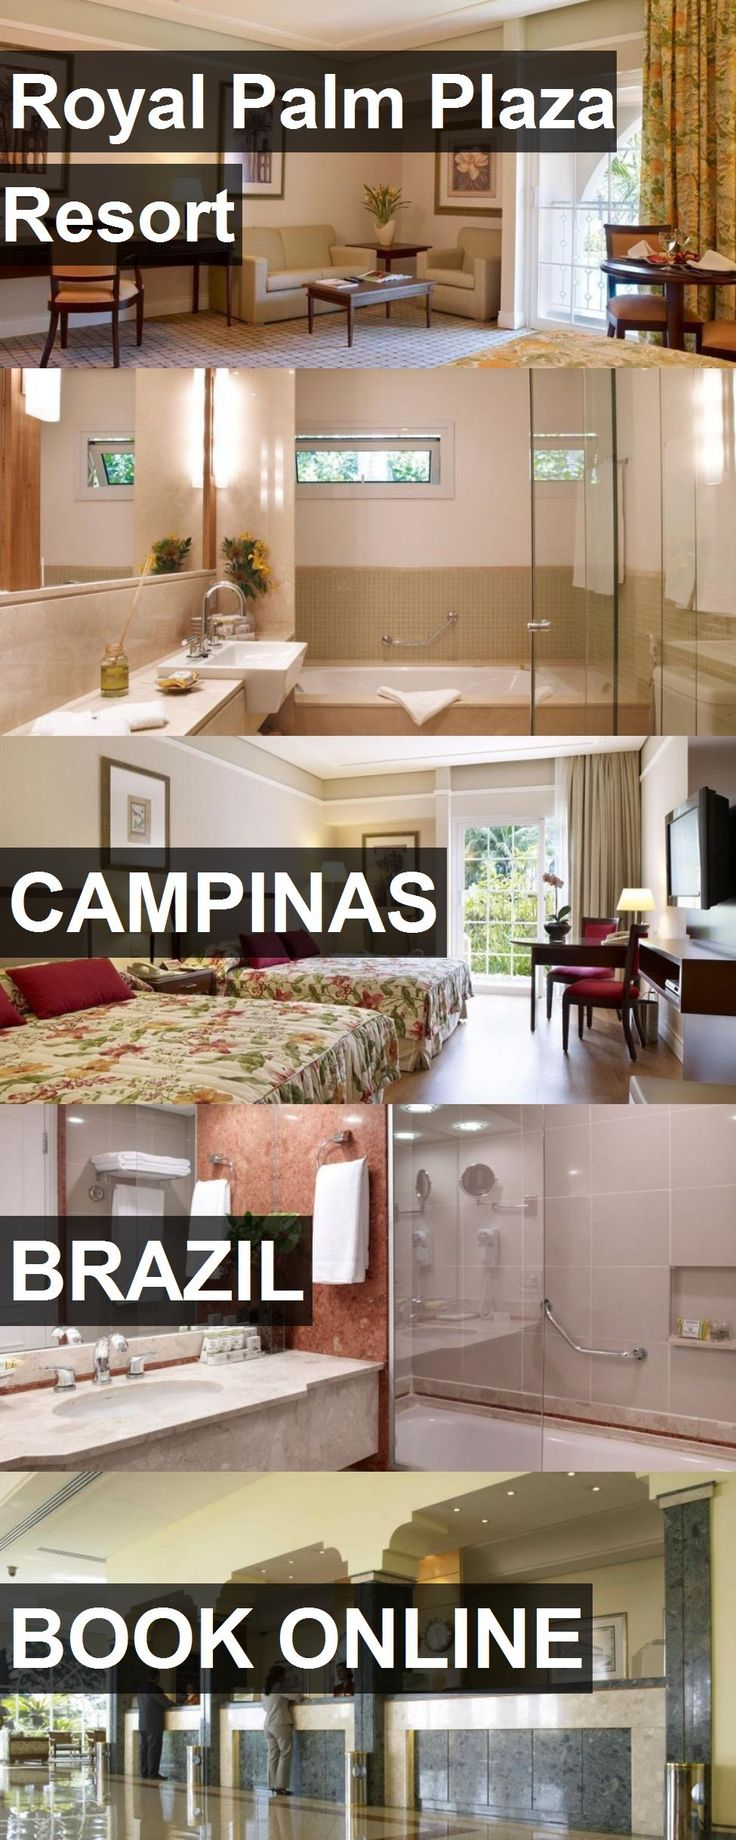 Hotel Royal Palm Plaza Resort in Campinas, Brazil. For more information, photos, reviews and best prices please follow the link. #Brazil #Campinas #travel #vacation #hotel